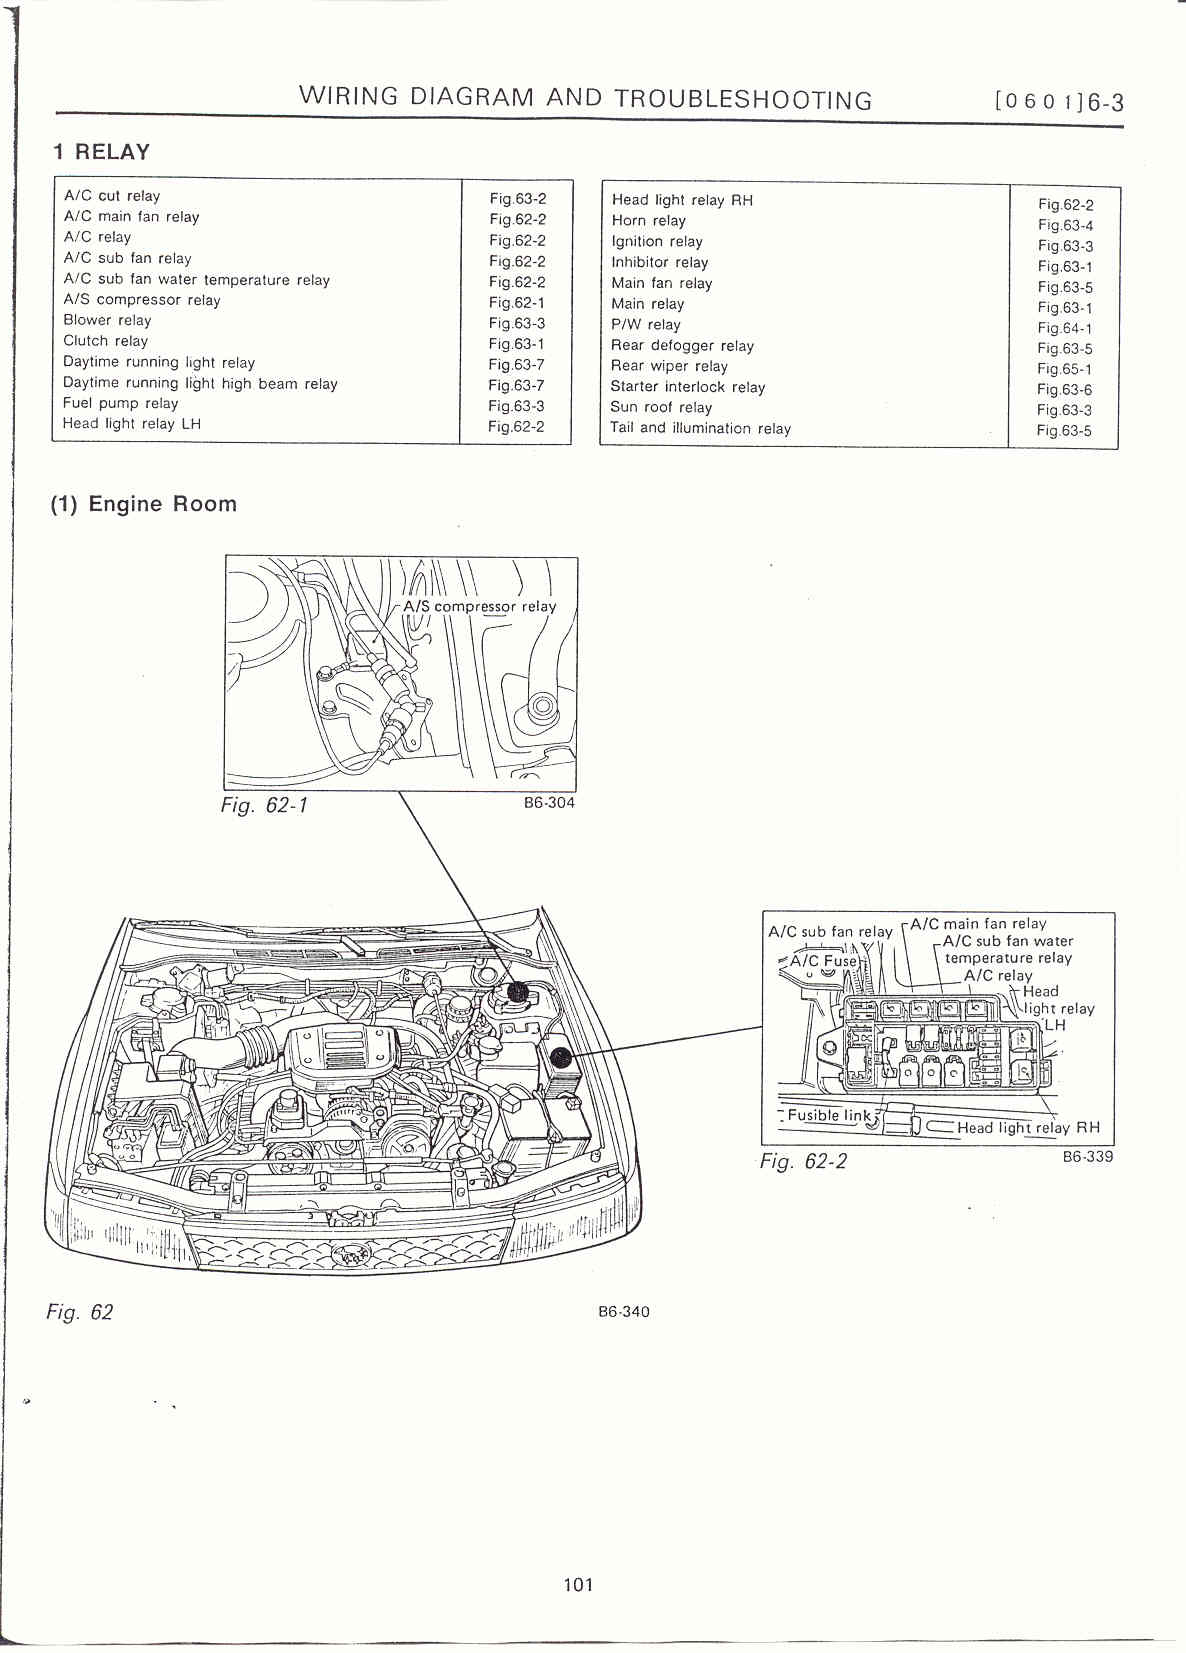 05 Subaru Outback Fuse Diagram Wiring Library Baja Turbo Schematic Relay Engine Room